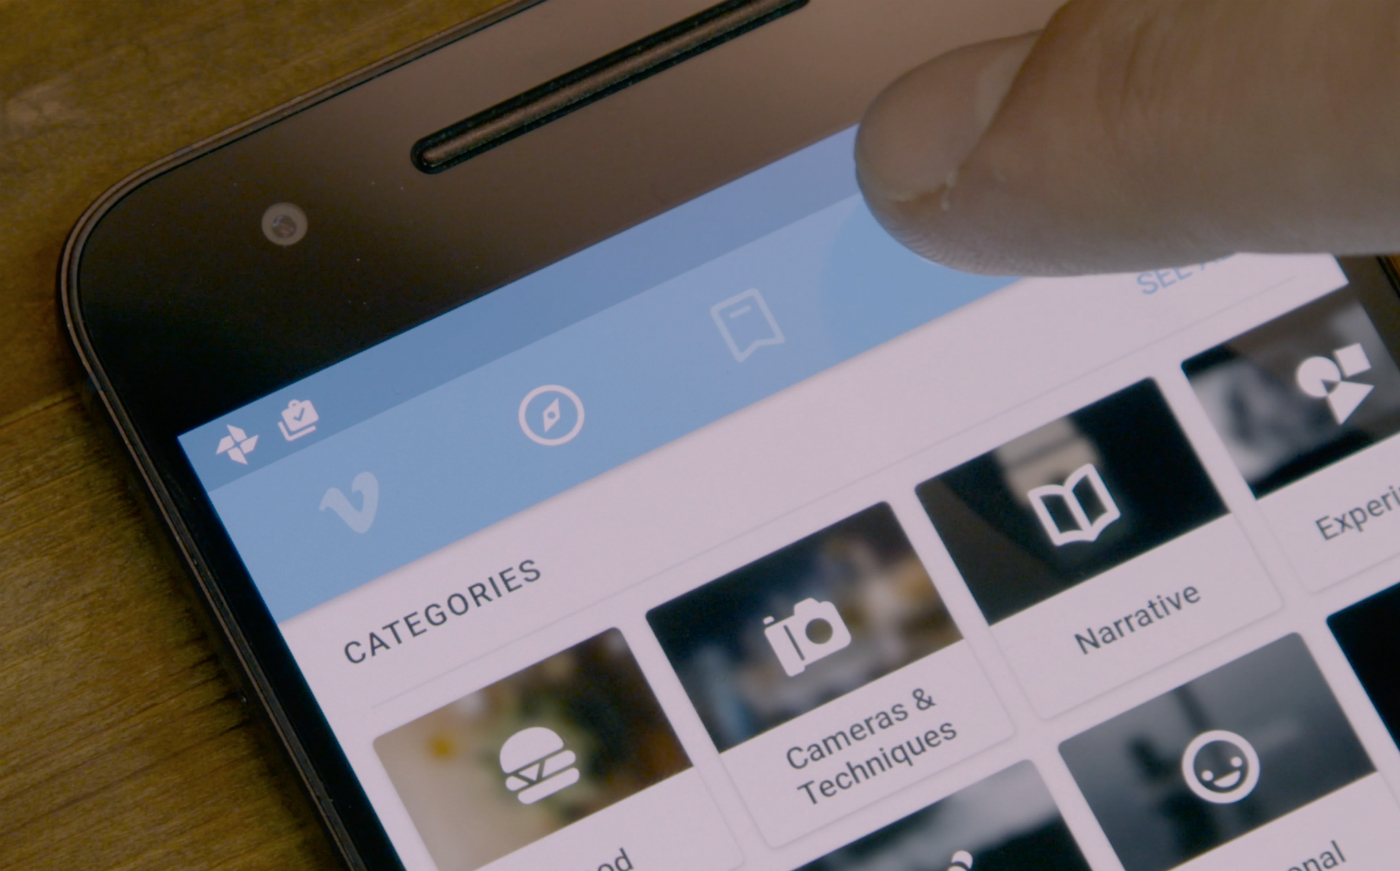 Vimeo adds Chromecast streaming to its Android app